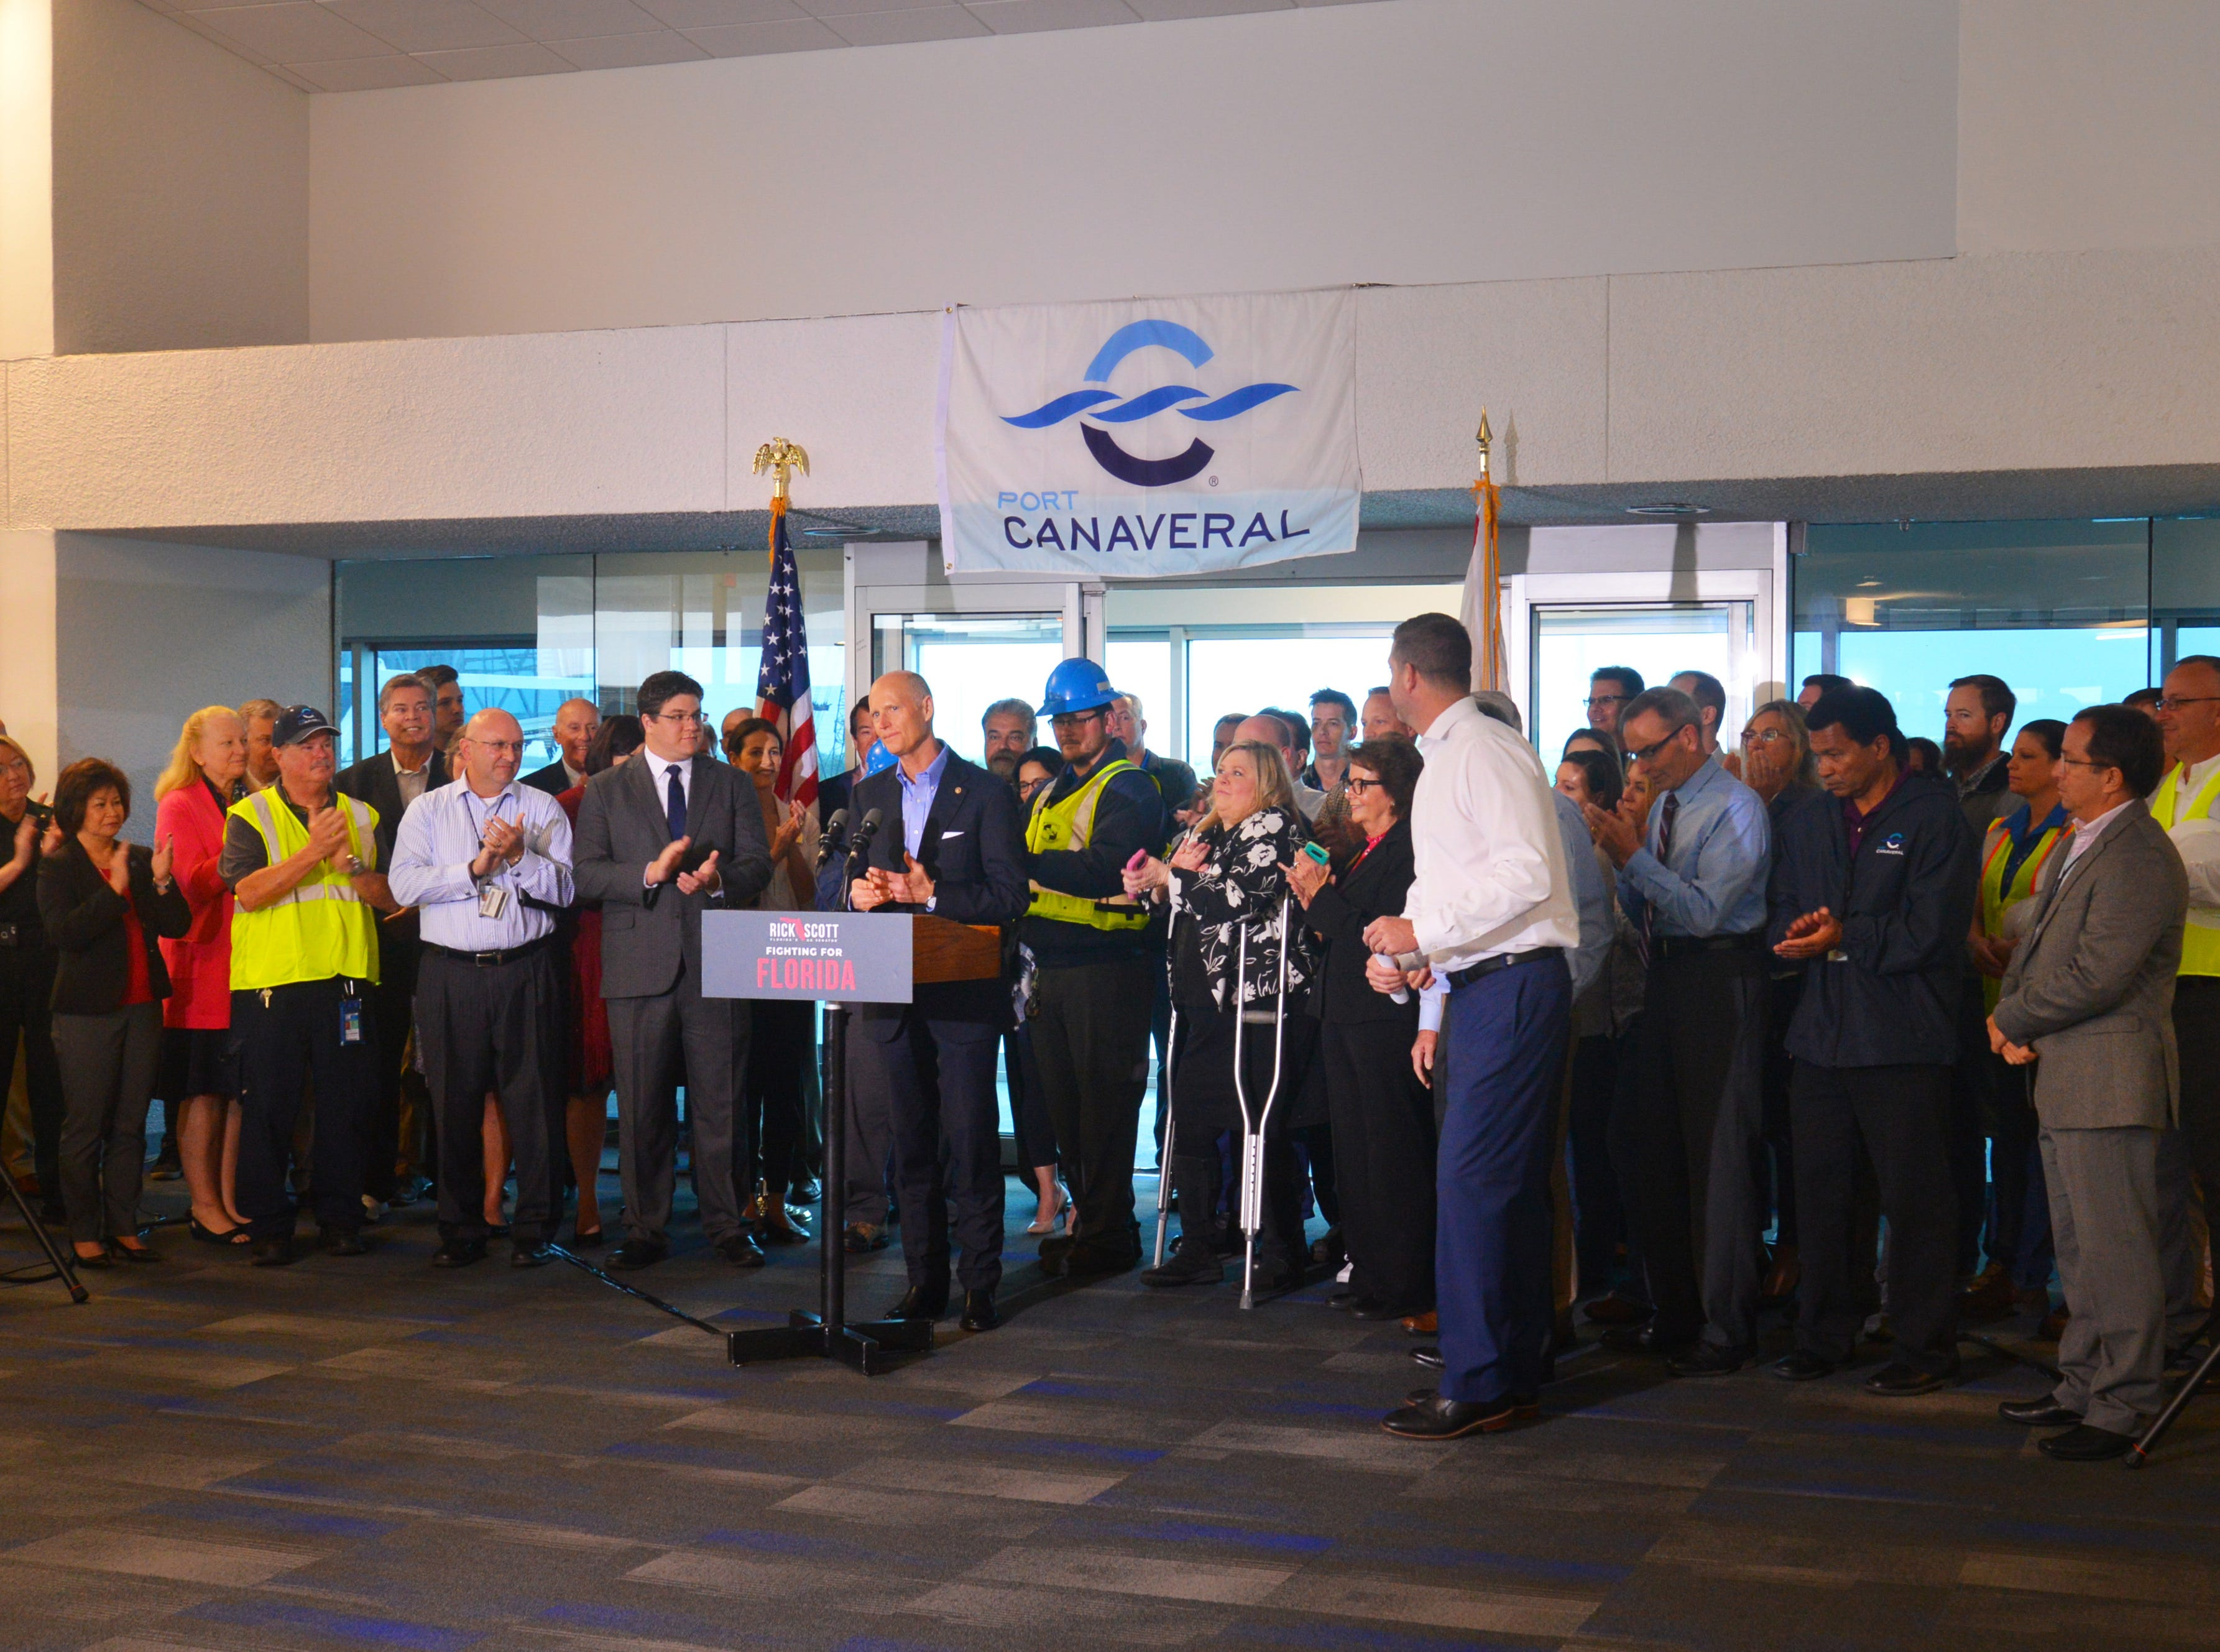 Sen. Rick Scott held a press conference at Terminal 5 Tuesday morning at Port Canaveral, pledging to work for $140 million in the budget for Florida ports.